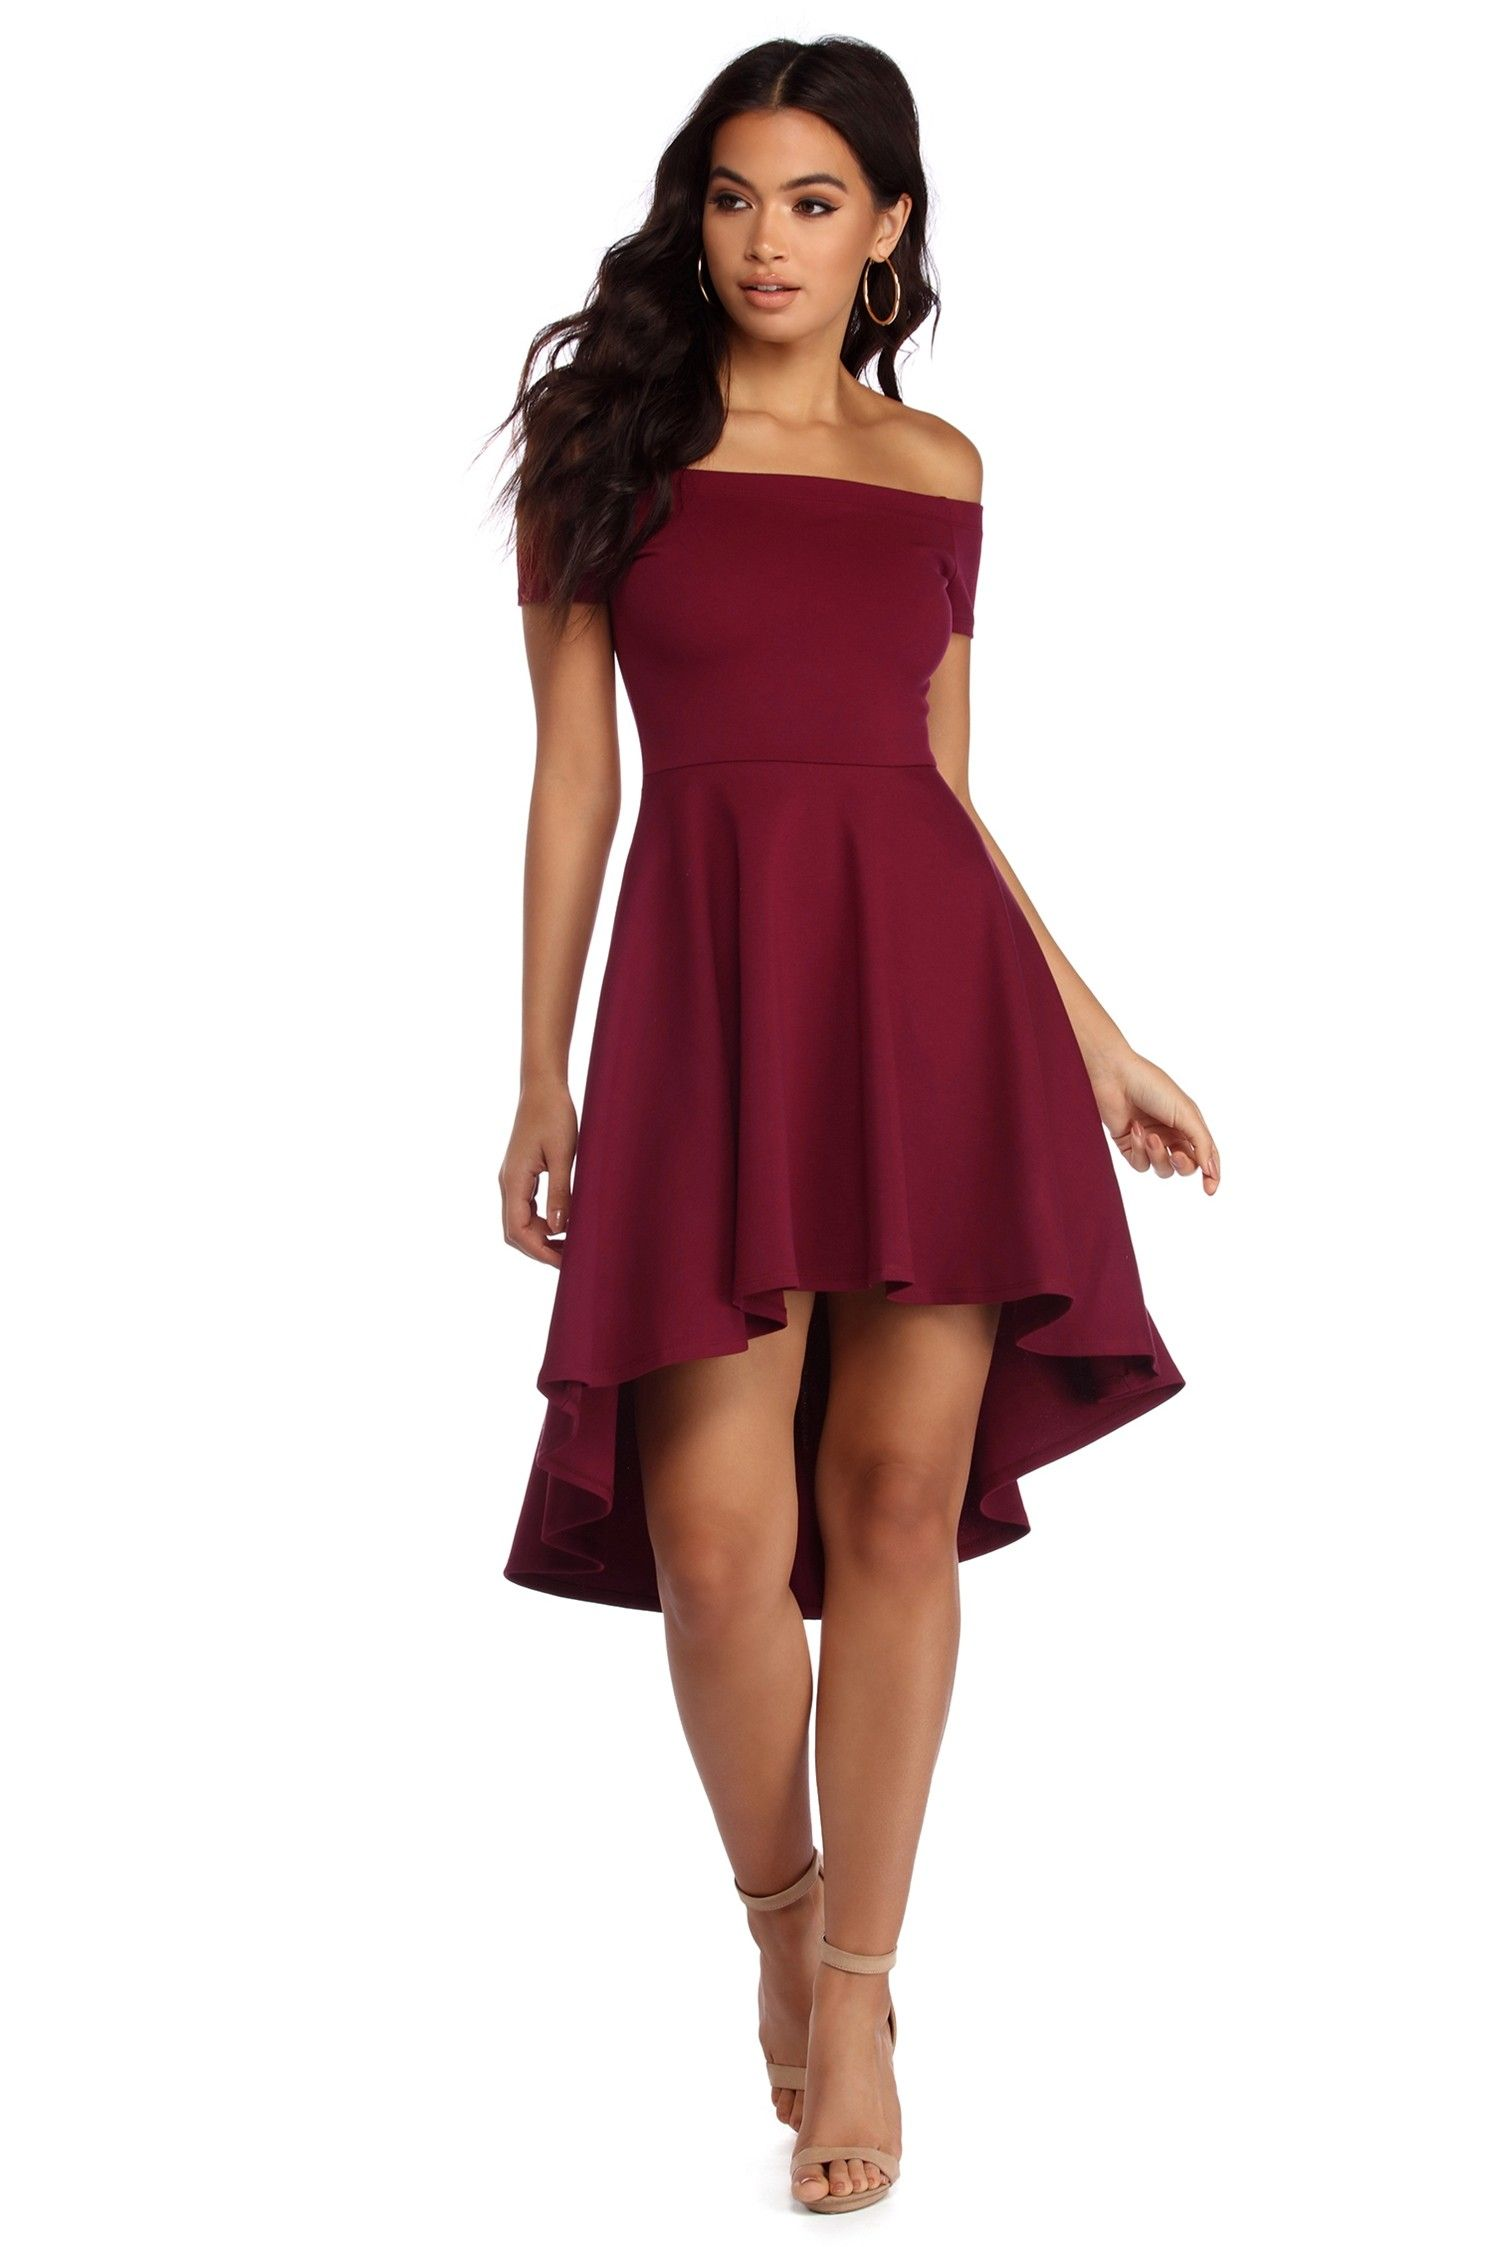 980f84feaf4 All The Rage Skater Dress in 2019